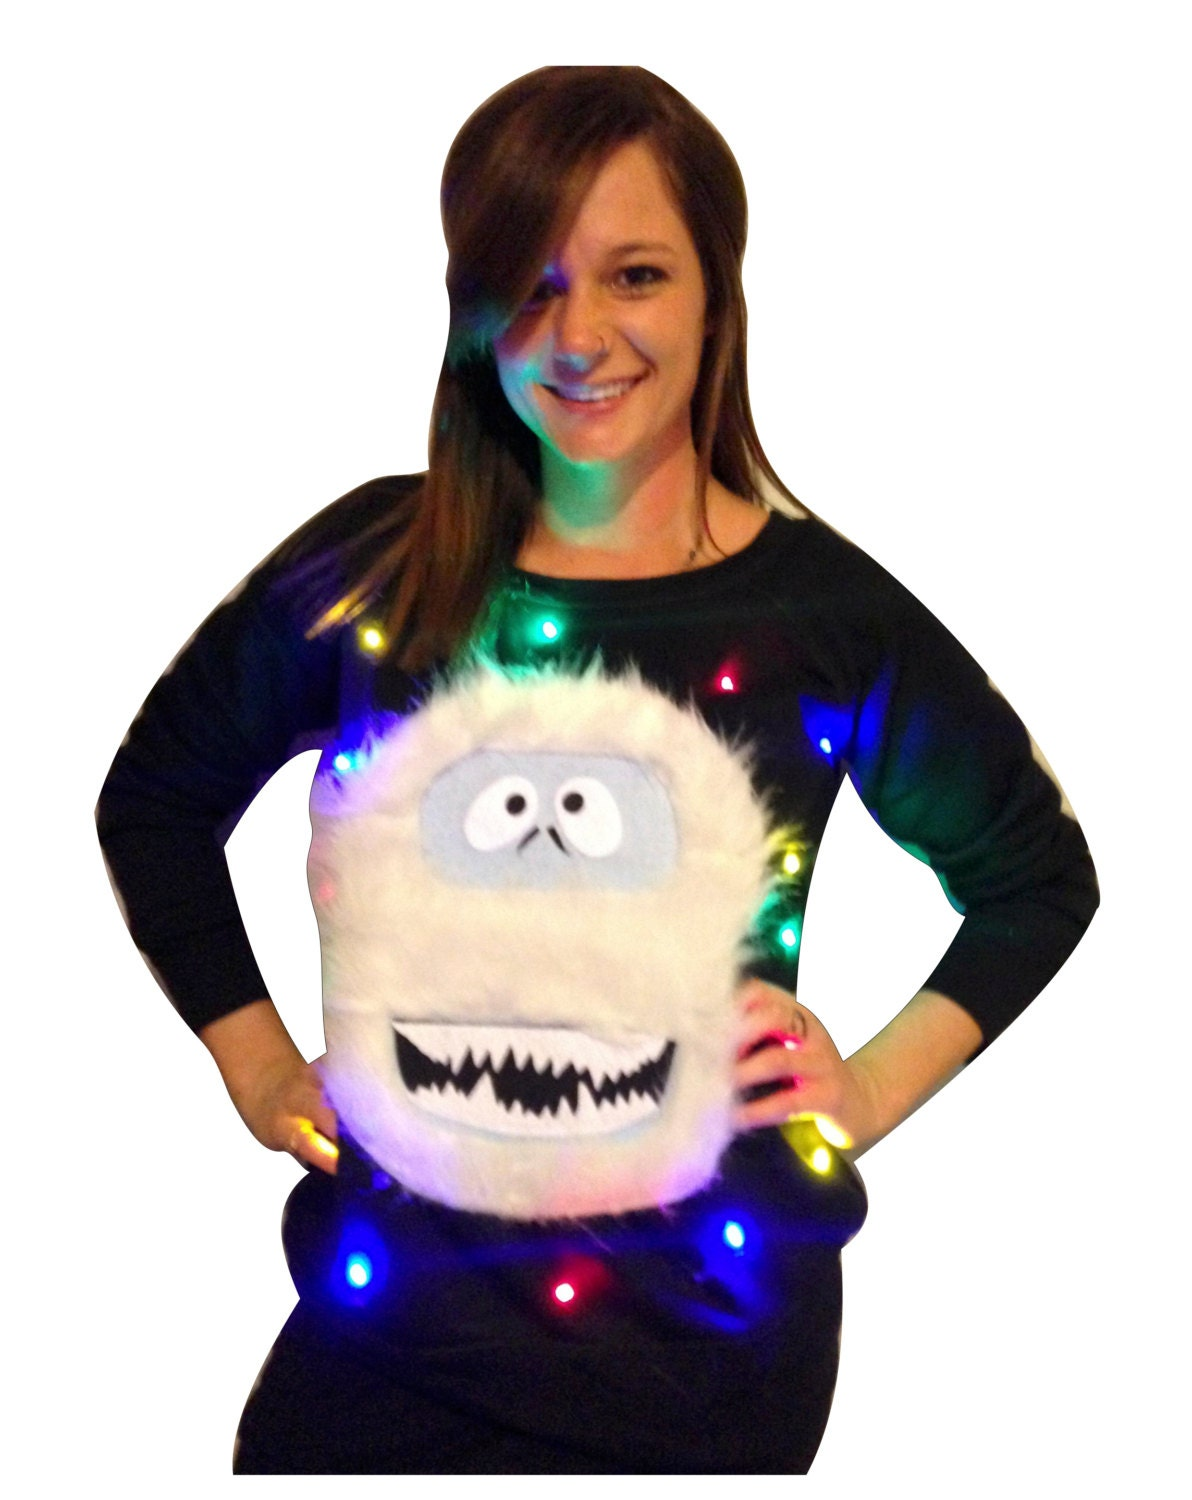 fef45ce3ce7 Women's UGLY CHRISTMAS SWEATER - Abominable Snowman! - Light Up - Swoop  Neck / Off The Shoulder _____**Fast Shipping**_____